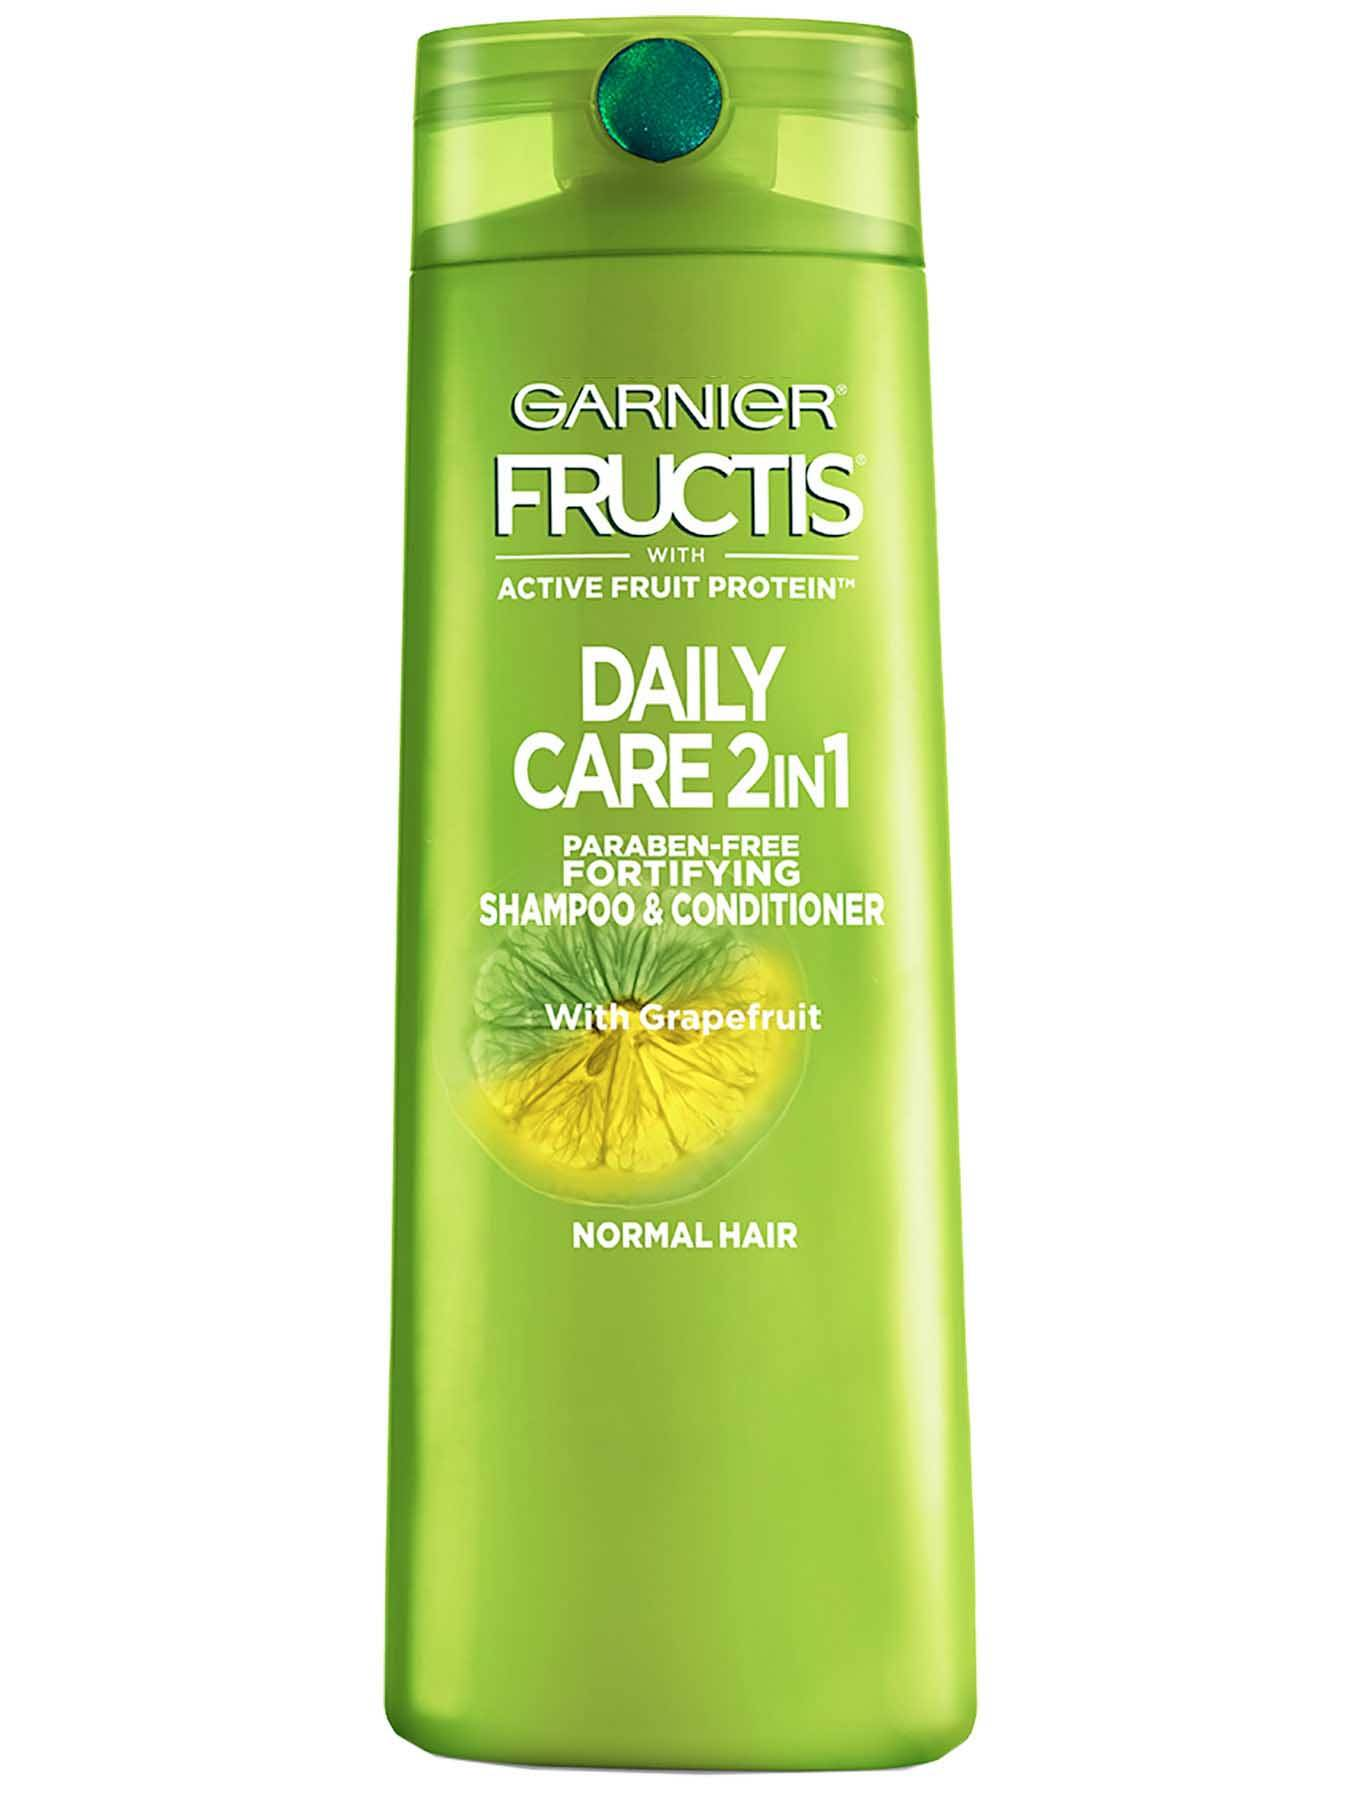 Garnier daily care 2in1 shampoo  conditioner 12.5 oz